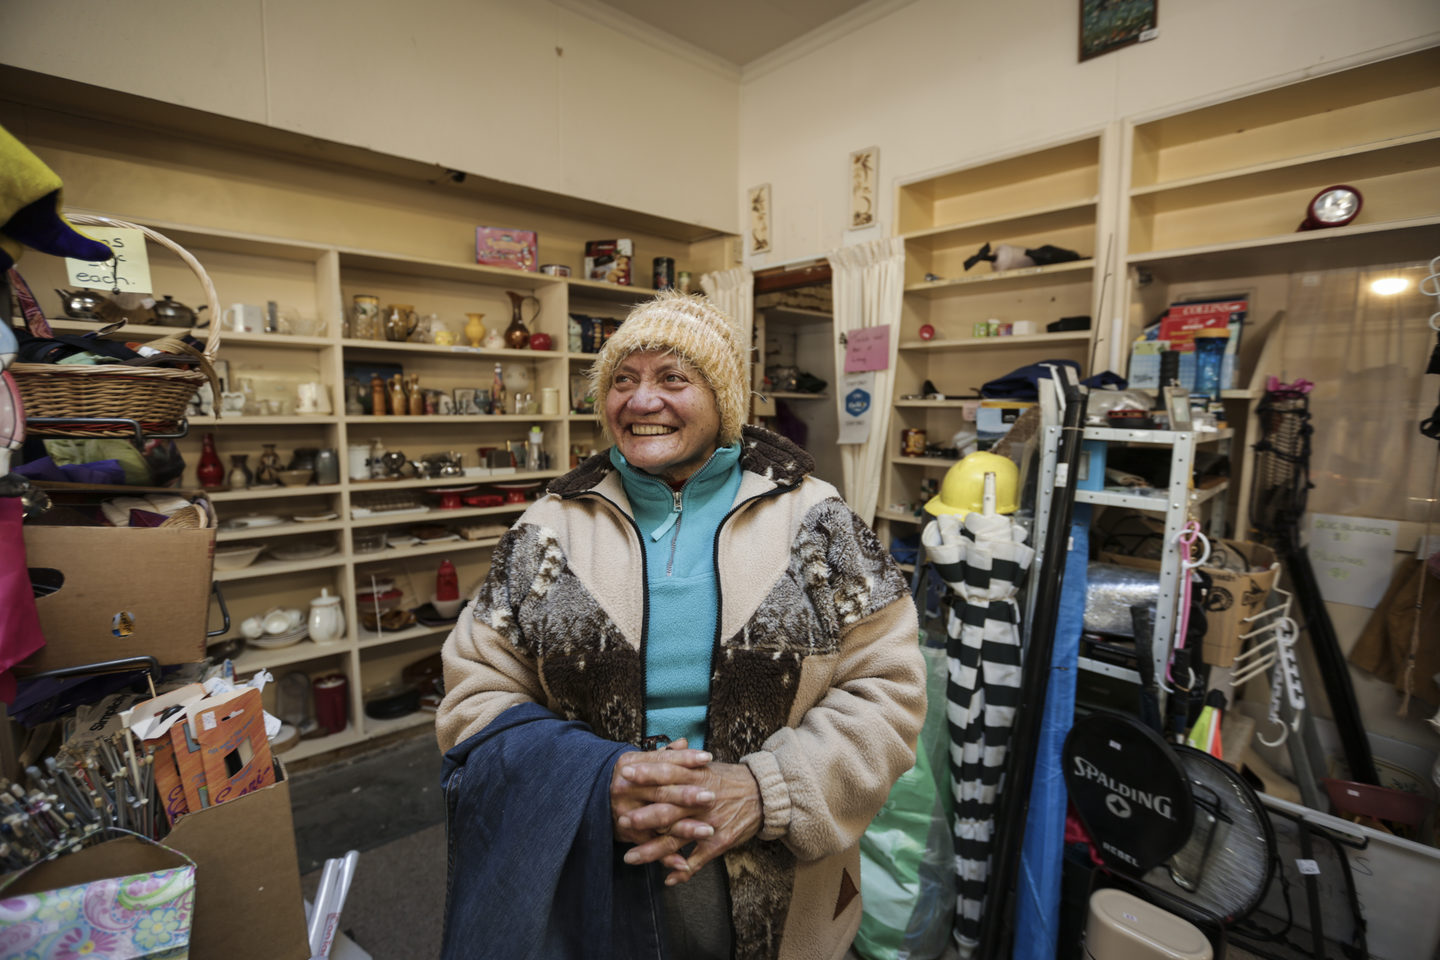 Mary Noa used to work at Mataura's meat works, which partially closed in 2012, but now volunteers at the local op shop